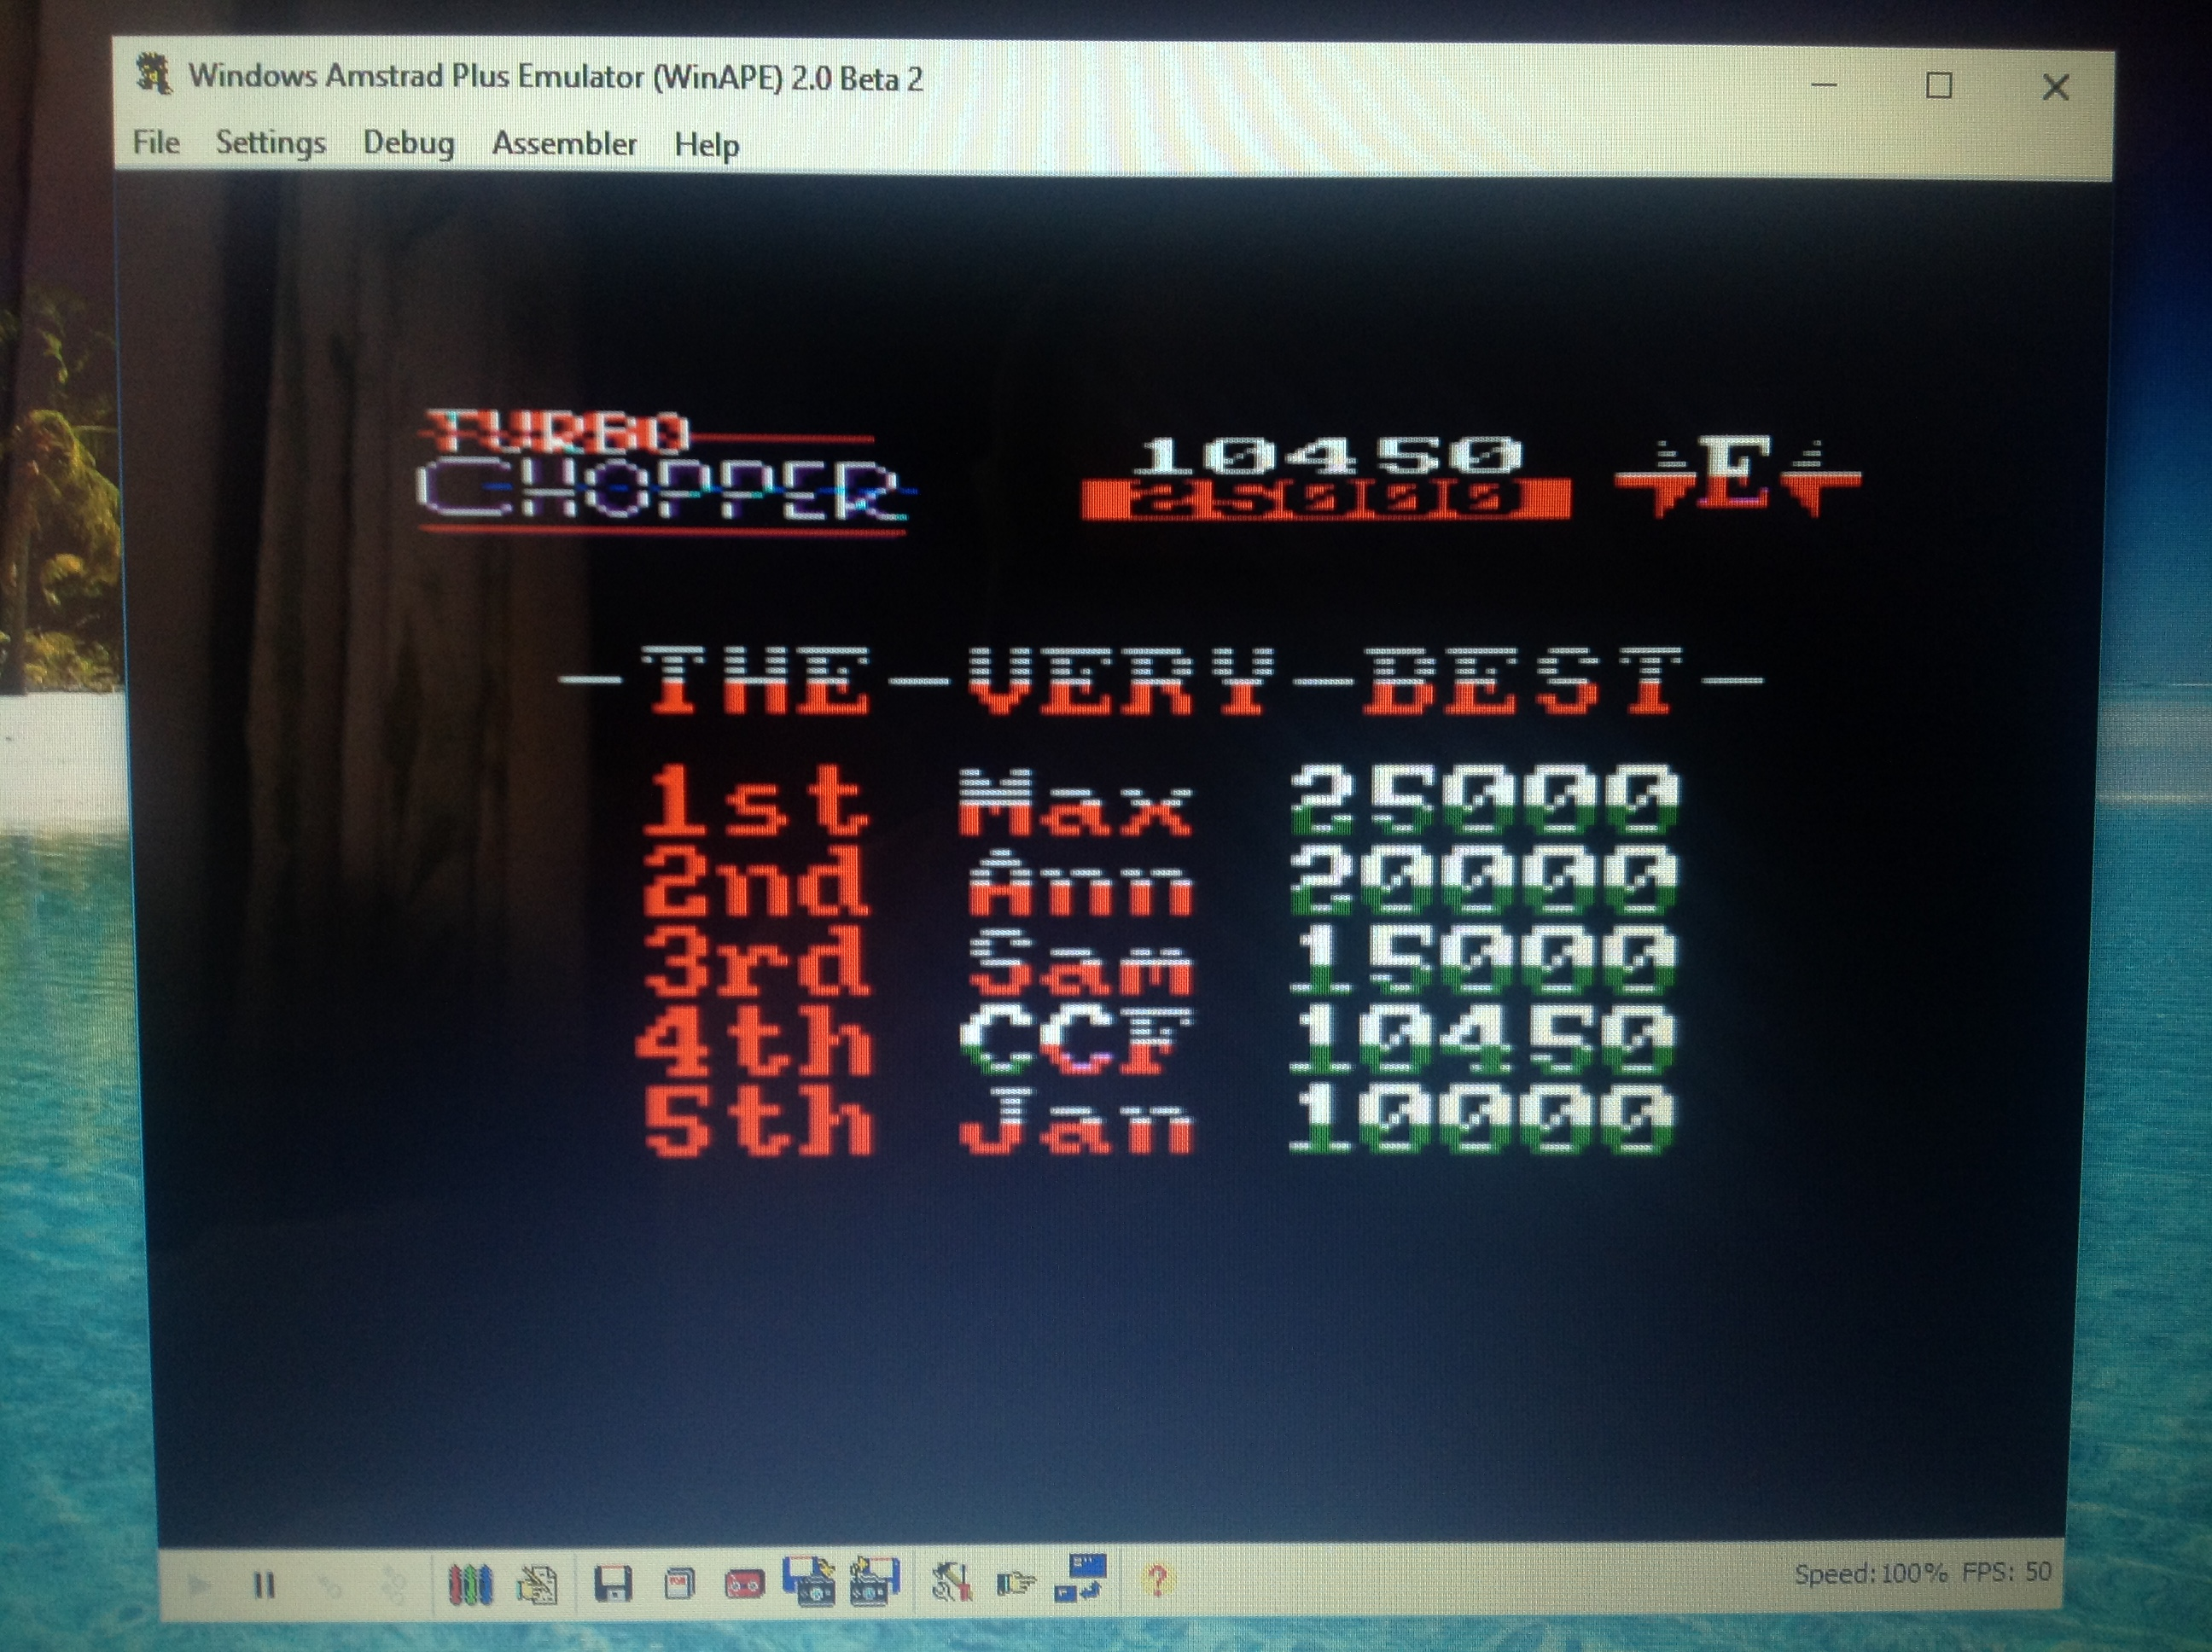 CoCoForest: Turbo Chopper (Amstrad CPC Emulated) 10,450 points on 2017-08-08 03:39:16